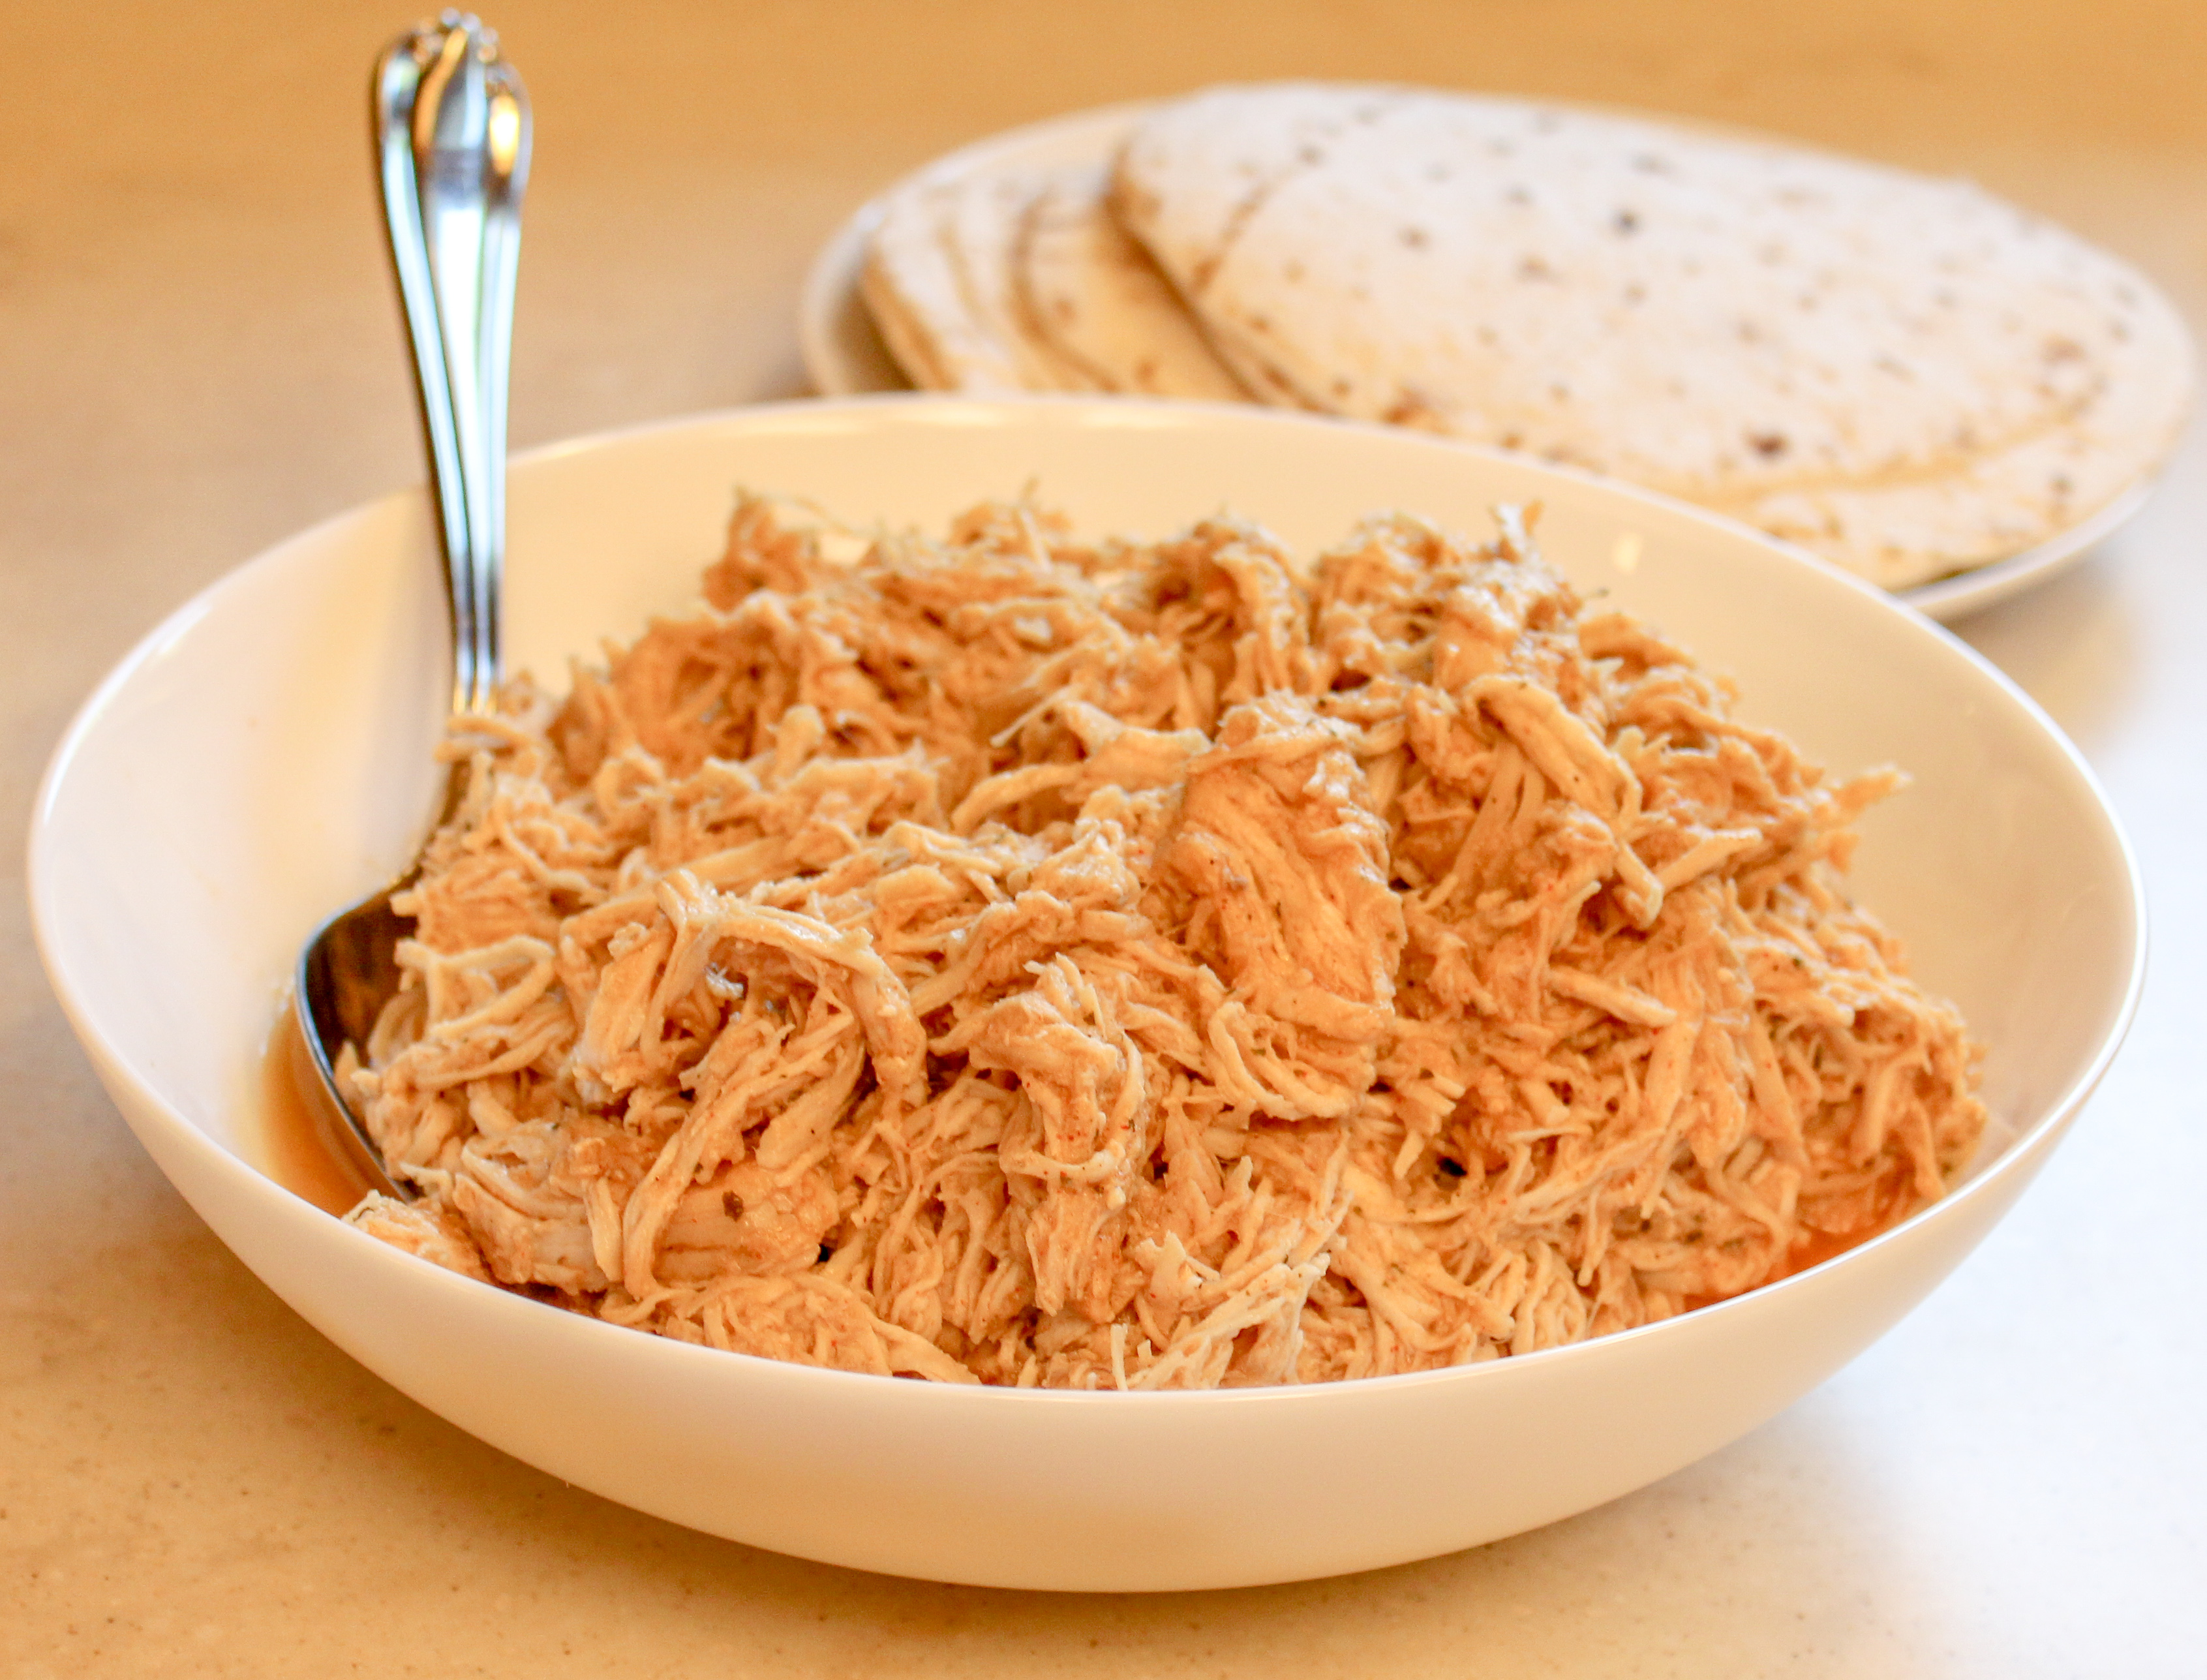 shredded chicken in a white bowl with a plate or tortillas in the background